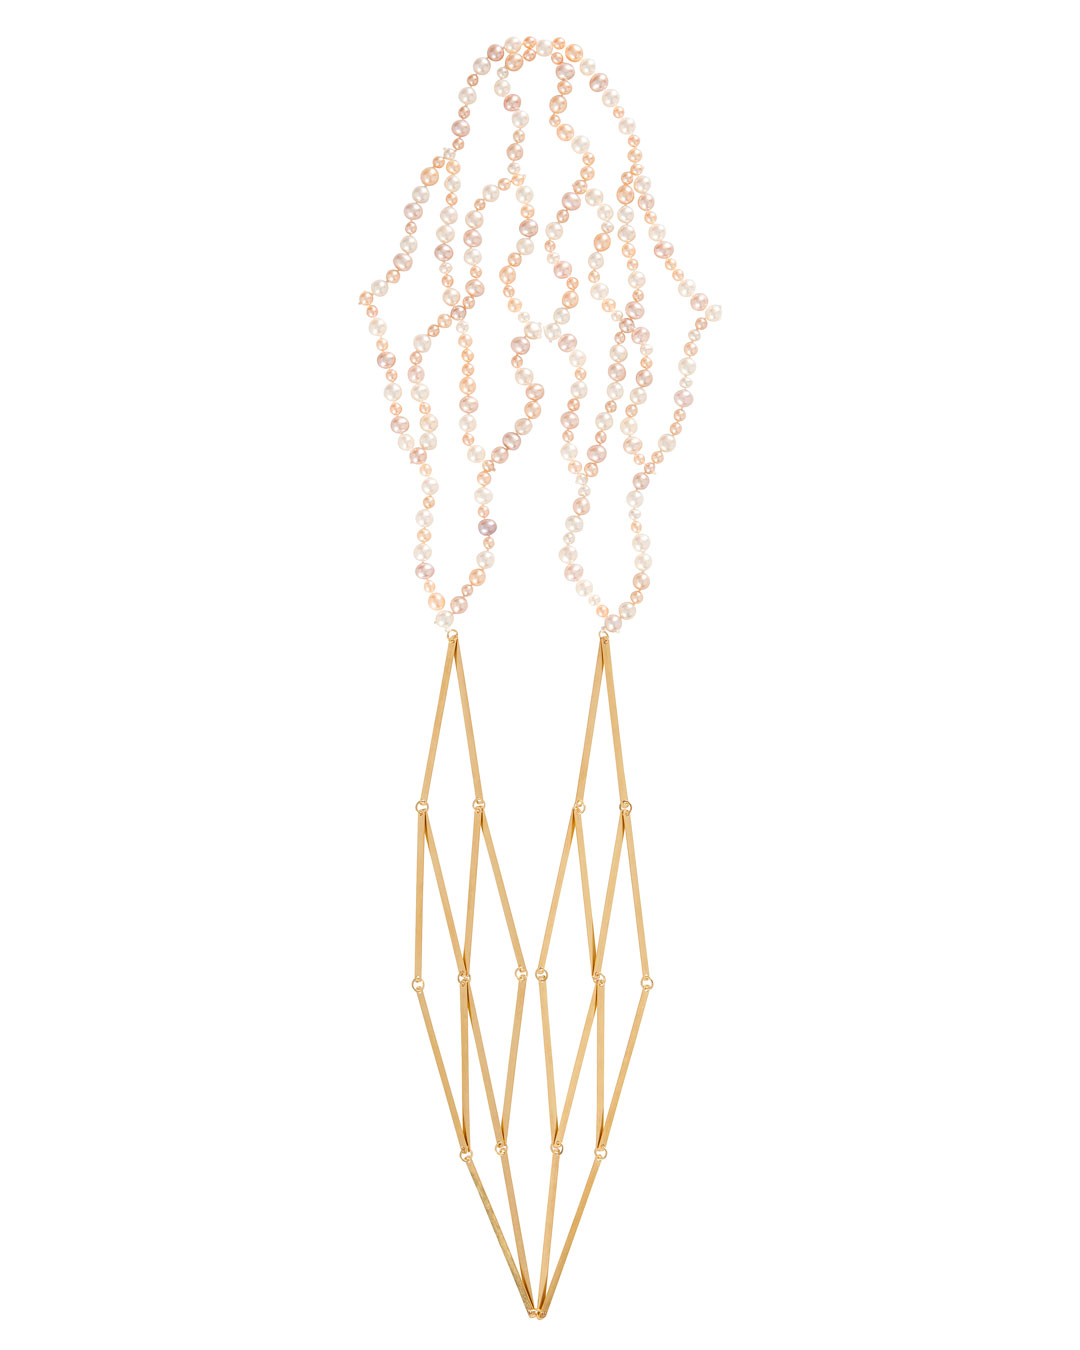 Annelies Planteijdt, Mooie stad – Collier en schelpen (Beautiful City - Necklace and Shells), 2017, necklace; gold, freshwater pearls, 90 x 450 mm, price on request (image 1/2)